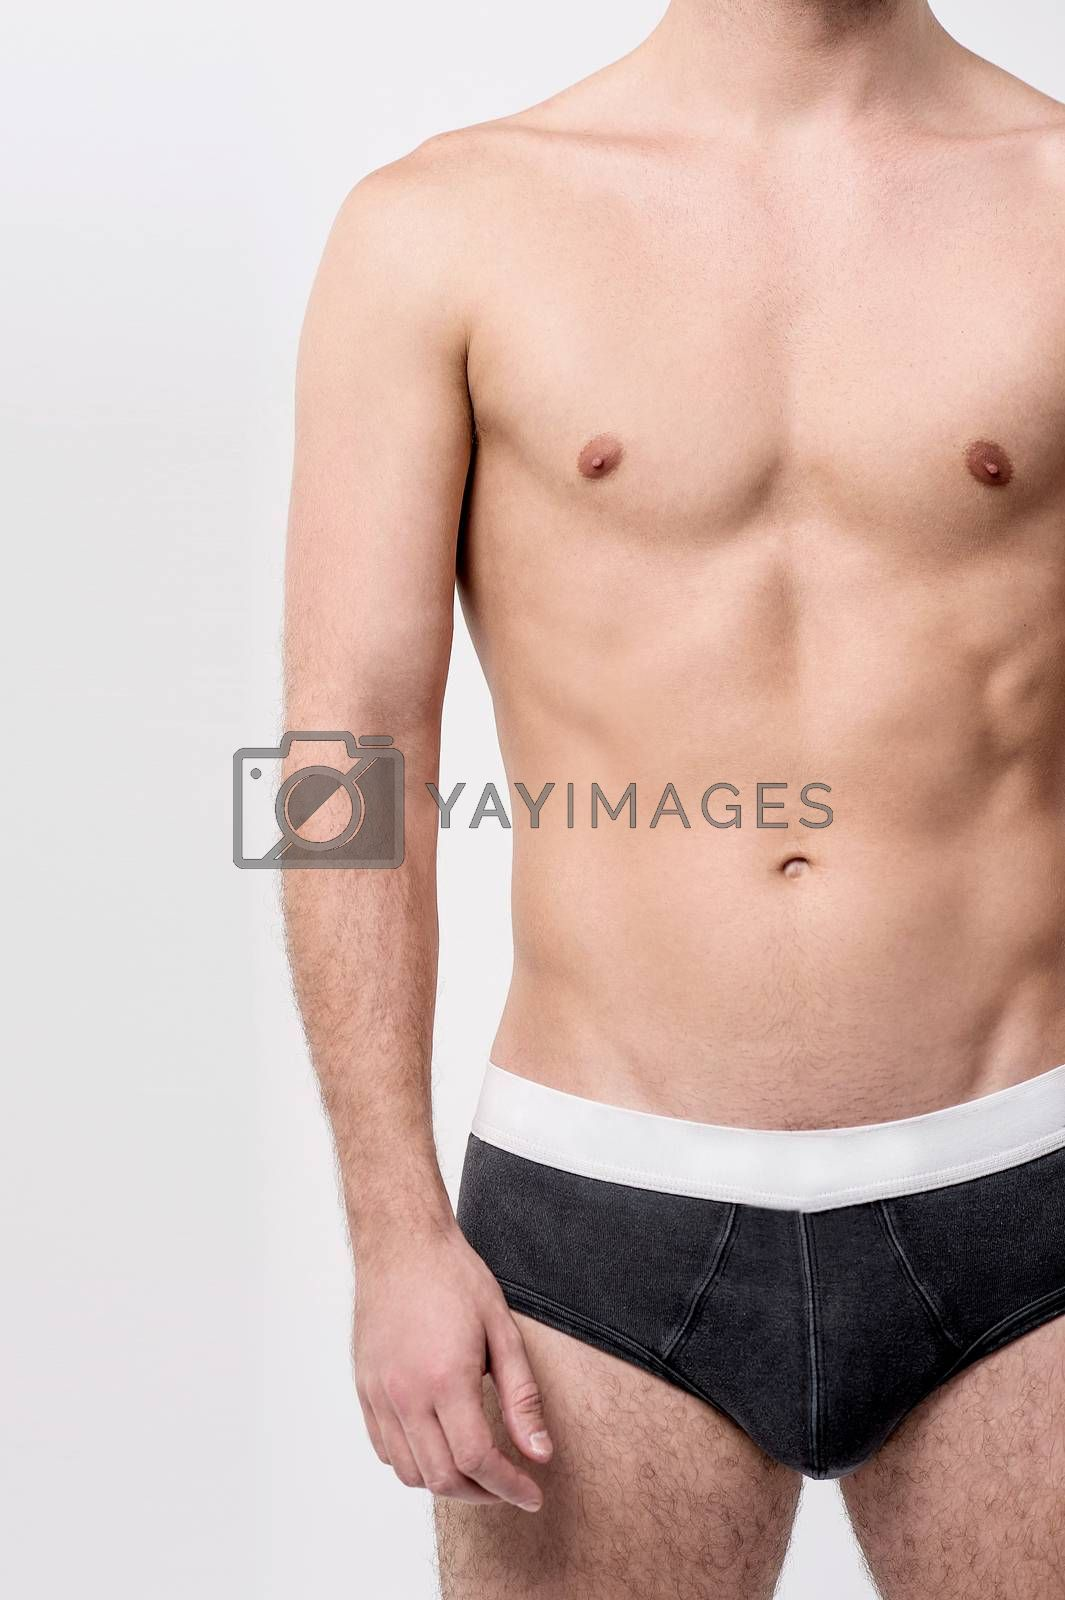 Cropped image of healthy male in underwear